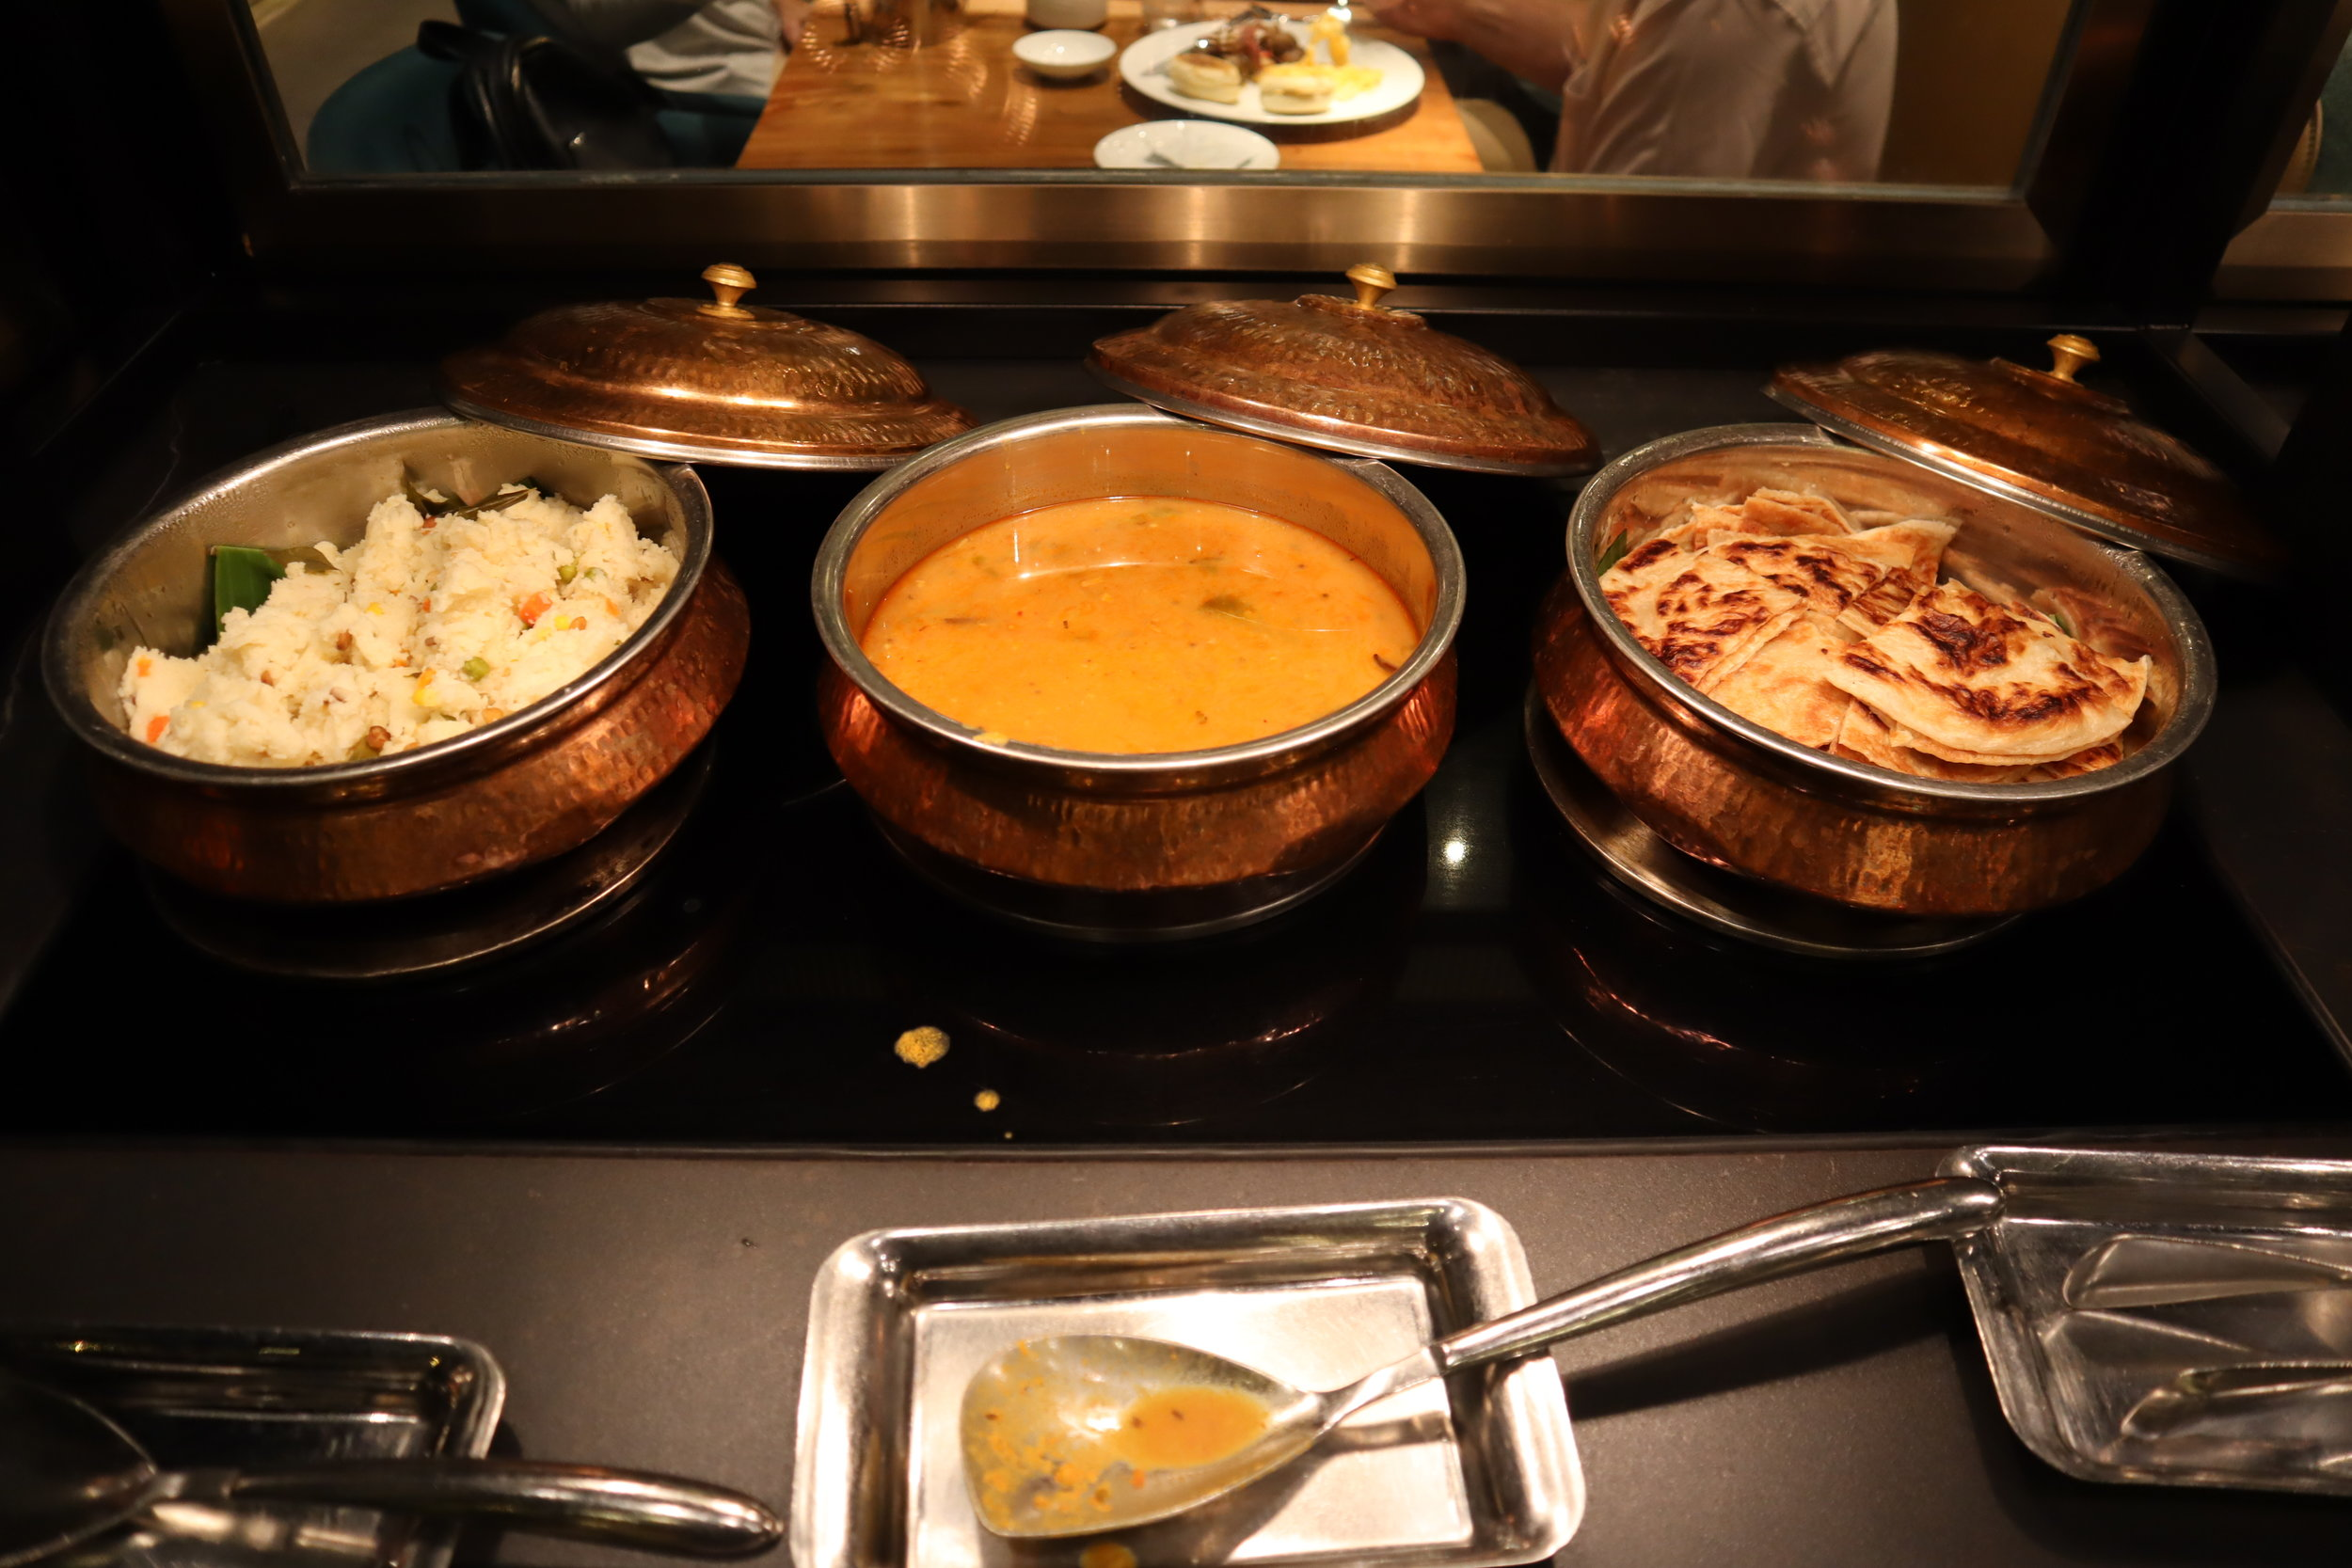 JW Marriott Singapore South Beach – Beach Road Kitchen curry station